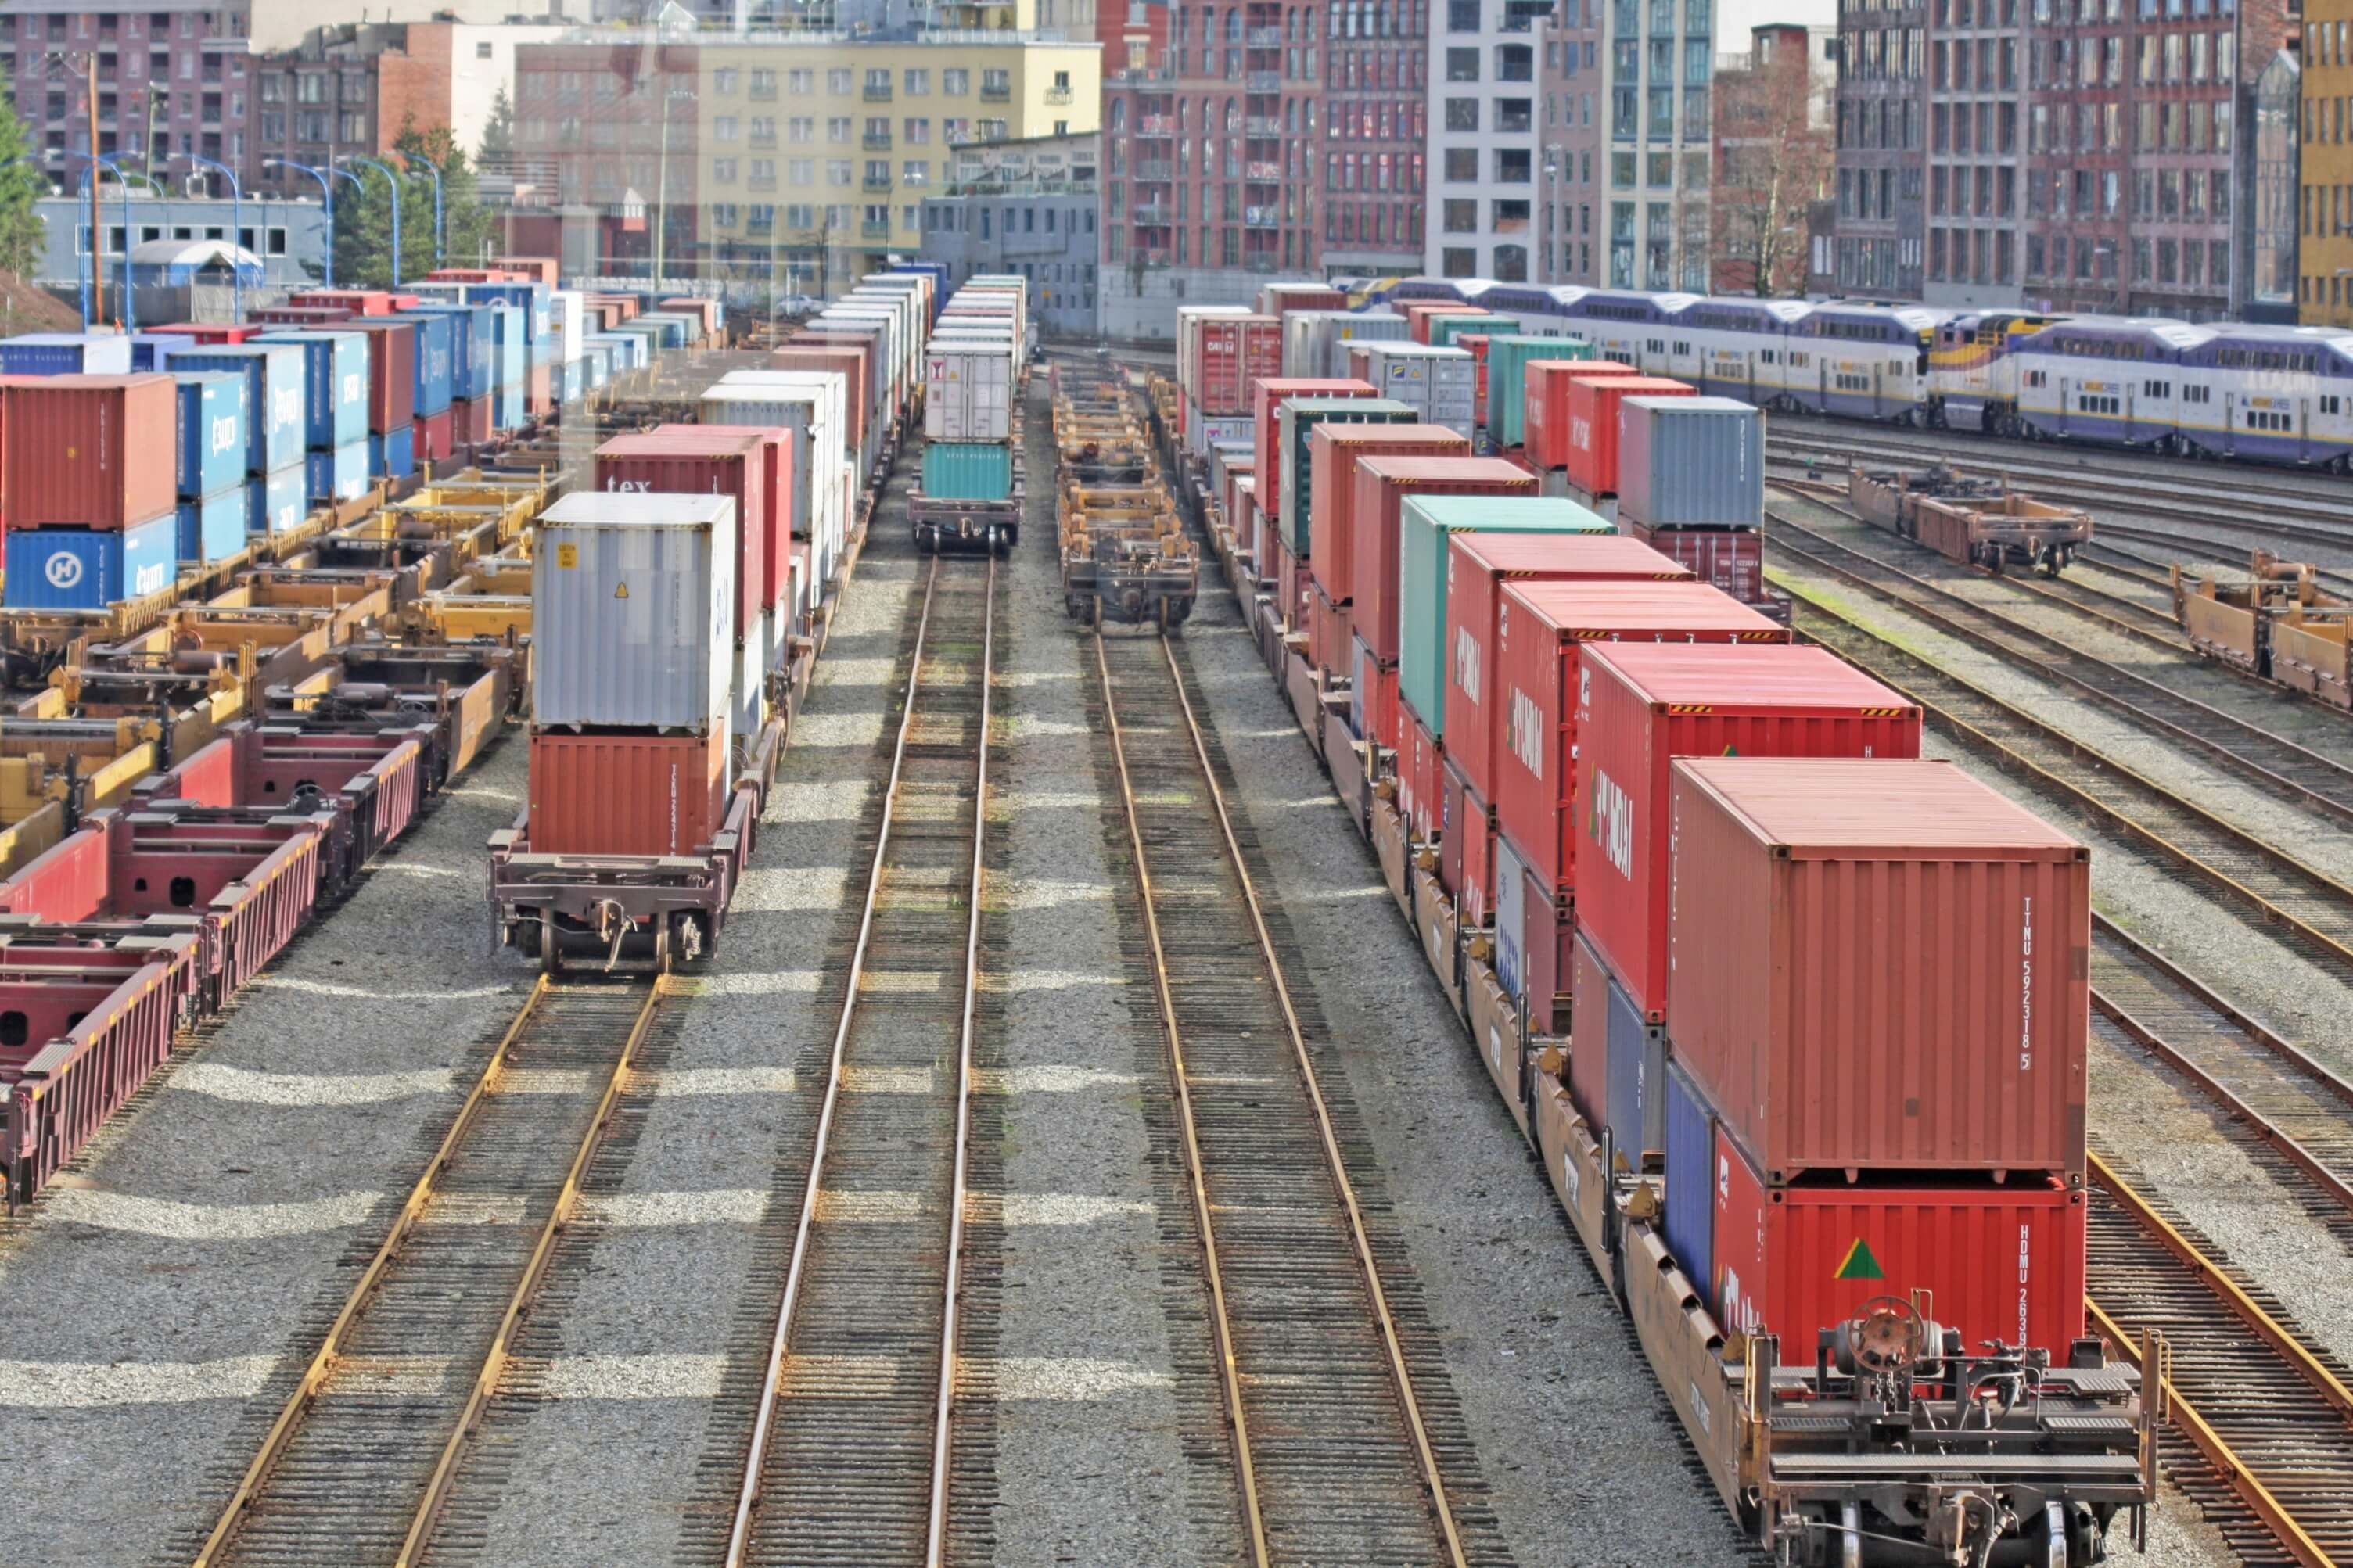 Cargo containers near Burrard Inlet at Port Metro Vancouver. Background shows historic Gastown buildings in the north part of the city on a winter afternoon.